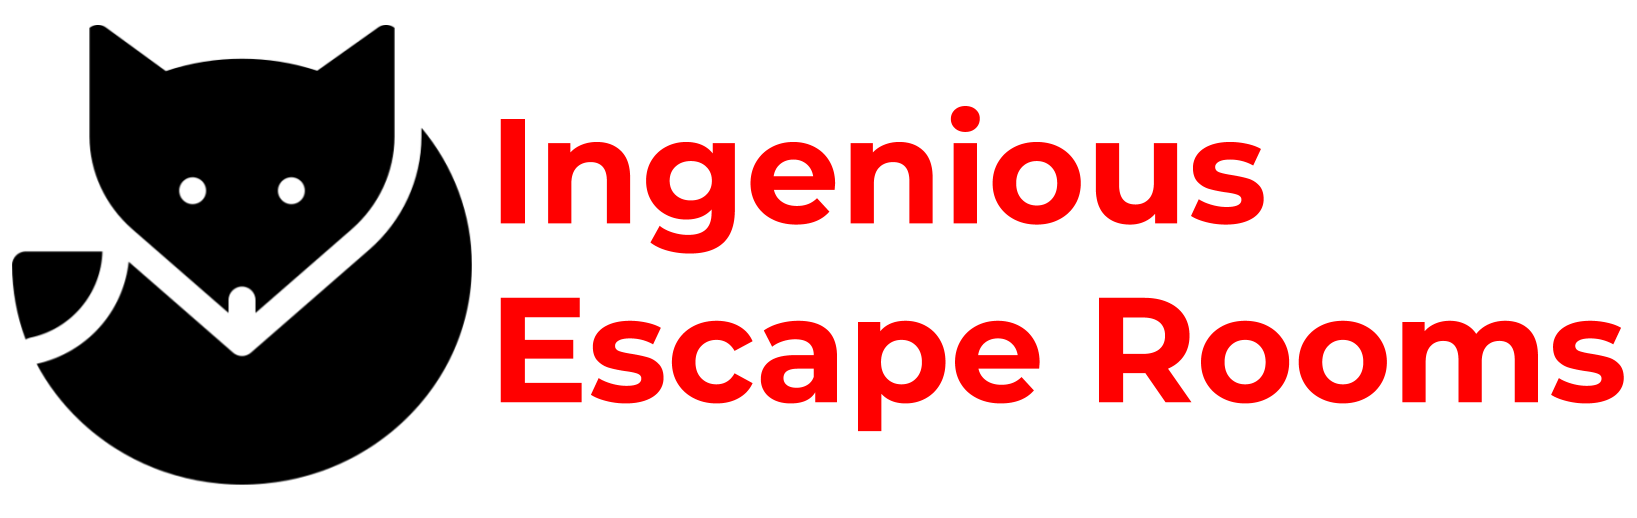 Ingenious Escape Rooms |   Untitled drawing (42)